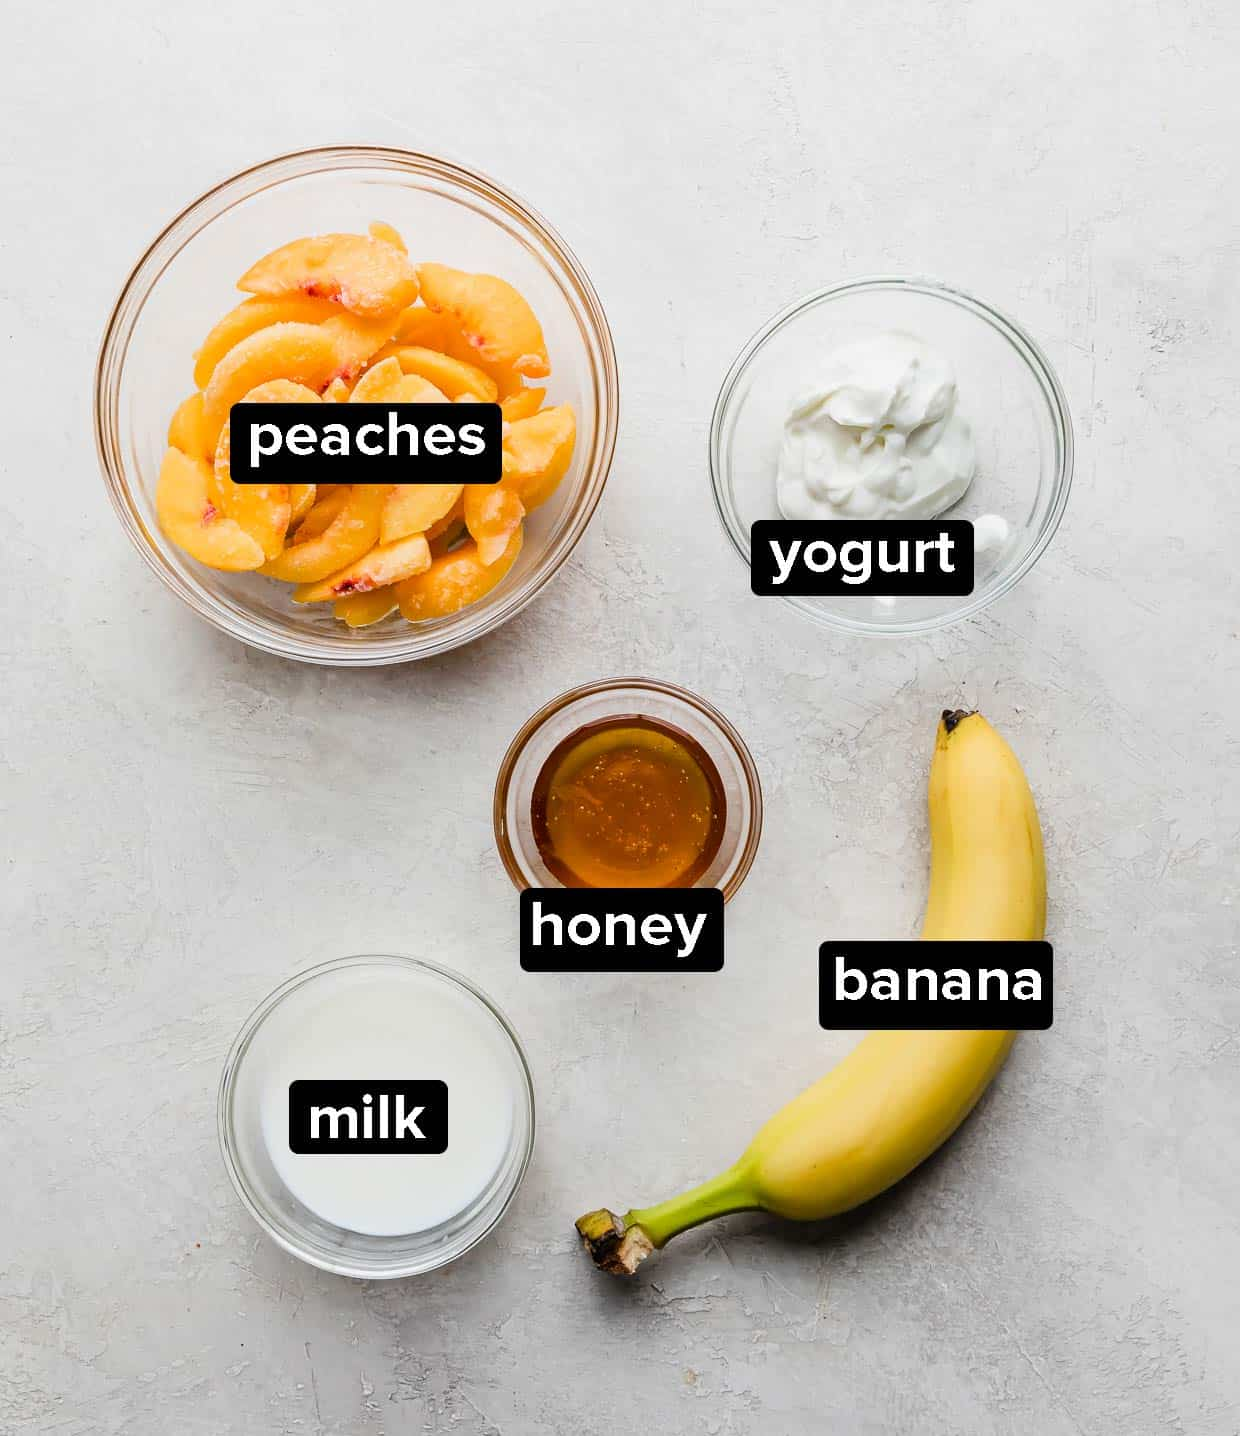 Ingredients used to make a banana peach smoothie on a gray background.